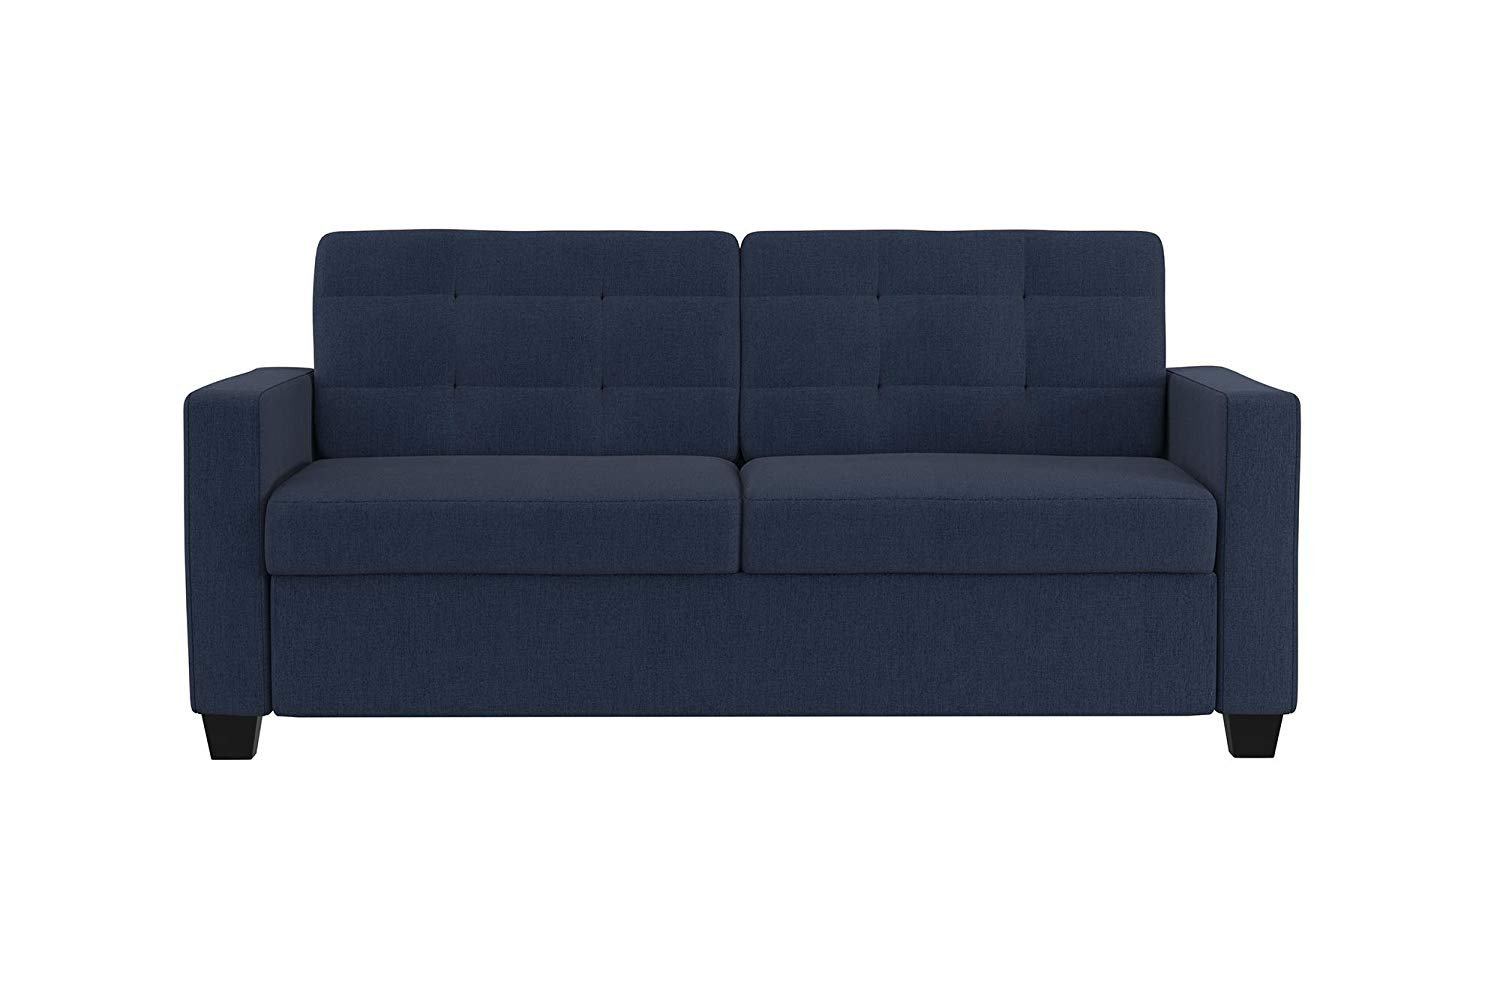 7 Best Sofa Beds May 2020 Reviews